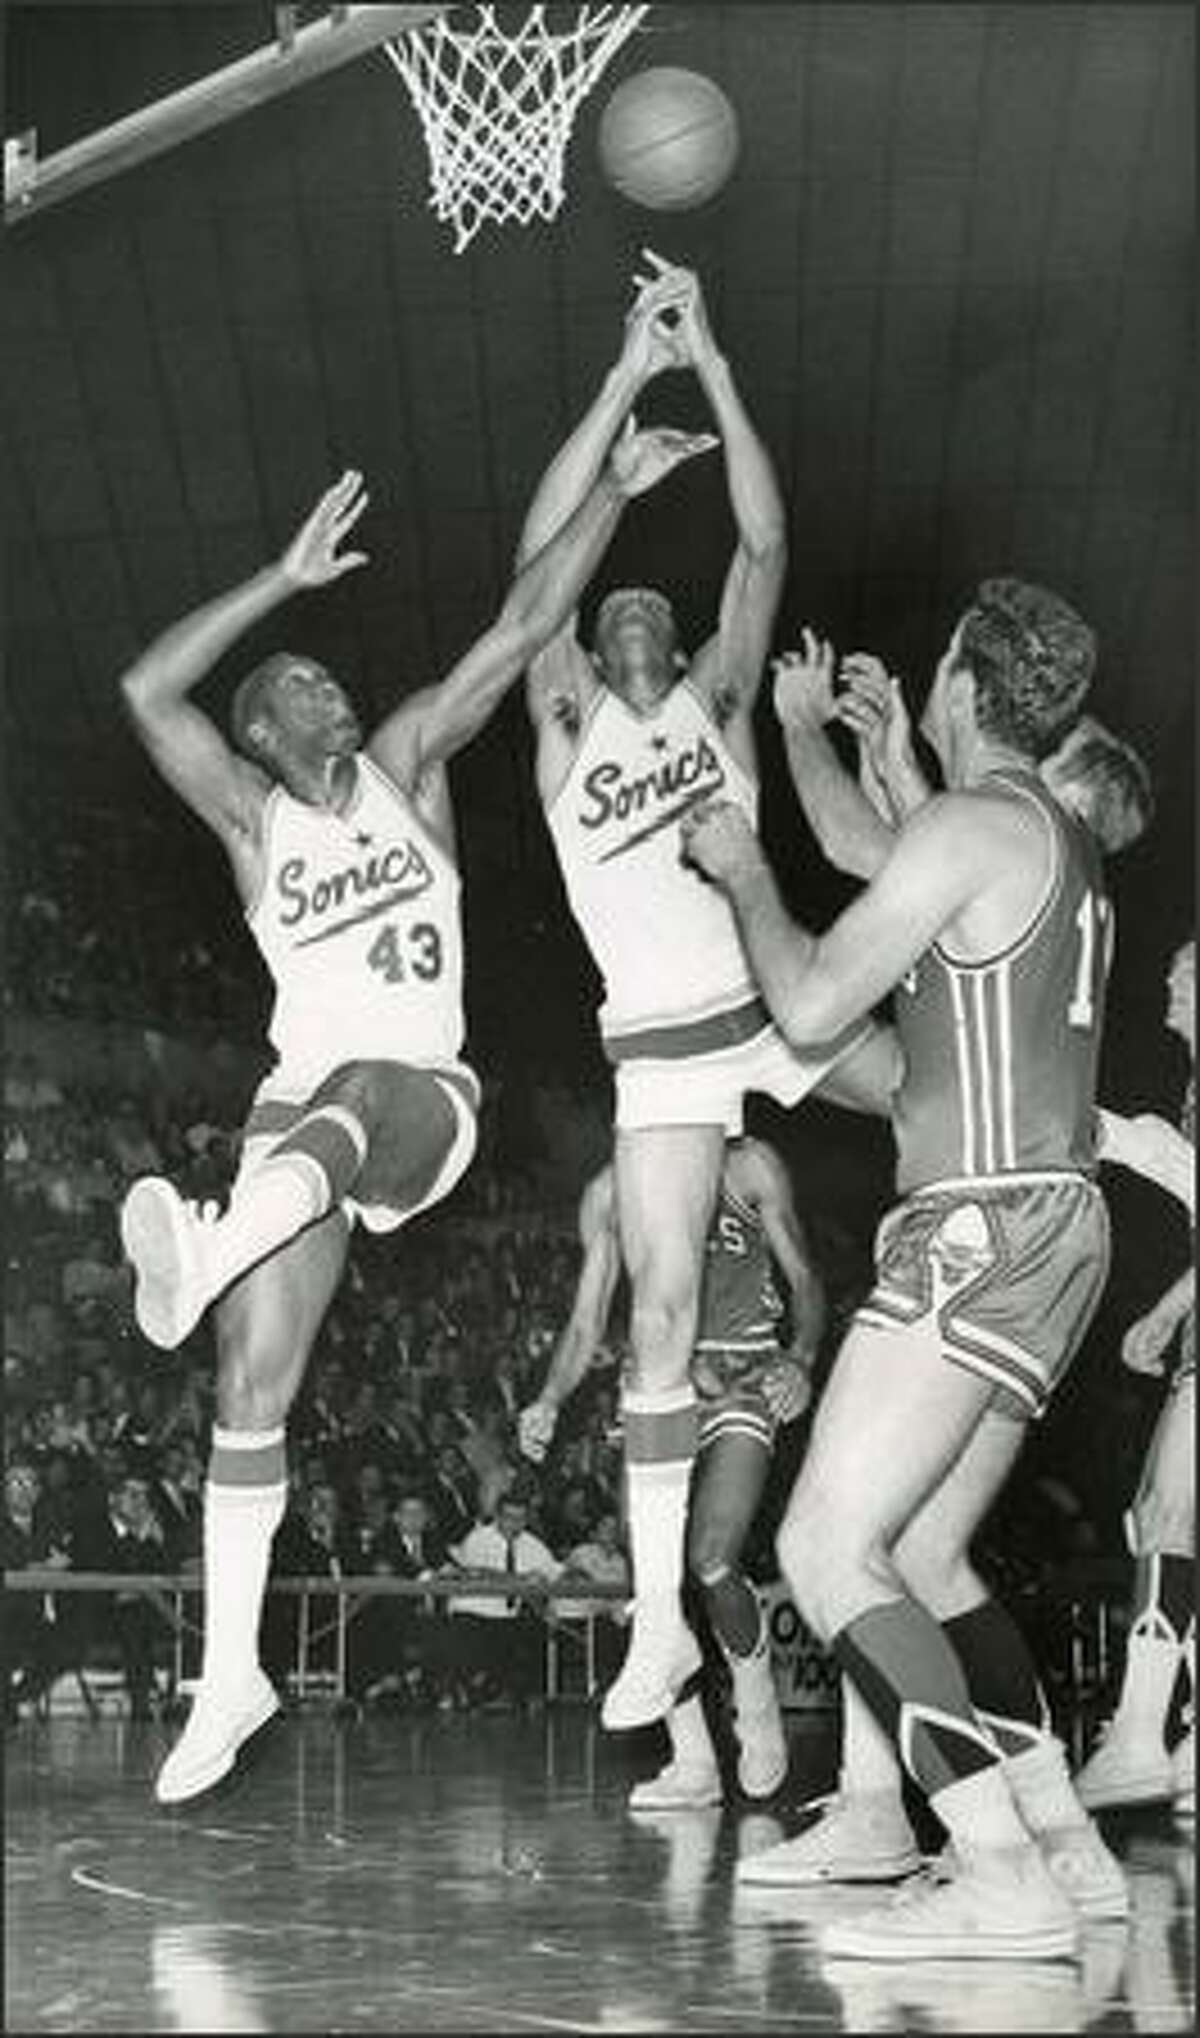 1967: Seattle Supersonics players Plummer Lott and Bob Rule go for a rebound against Chicago.